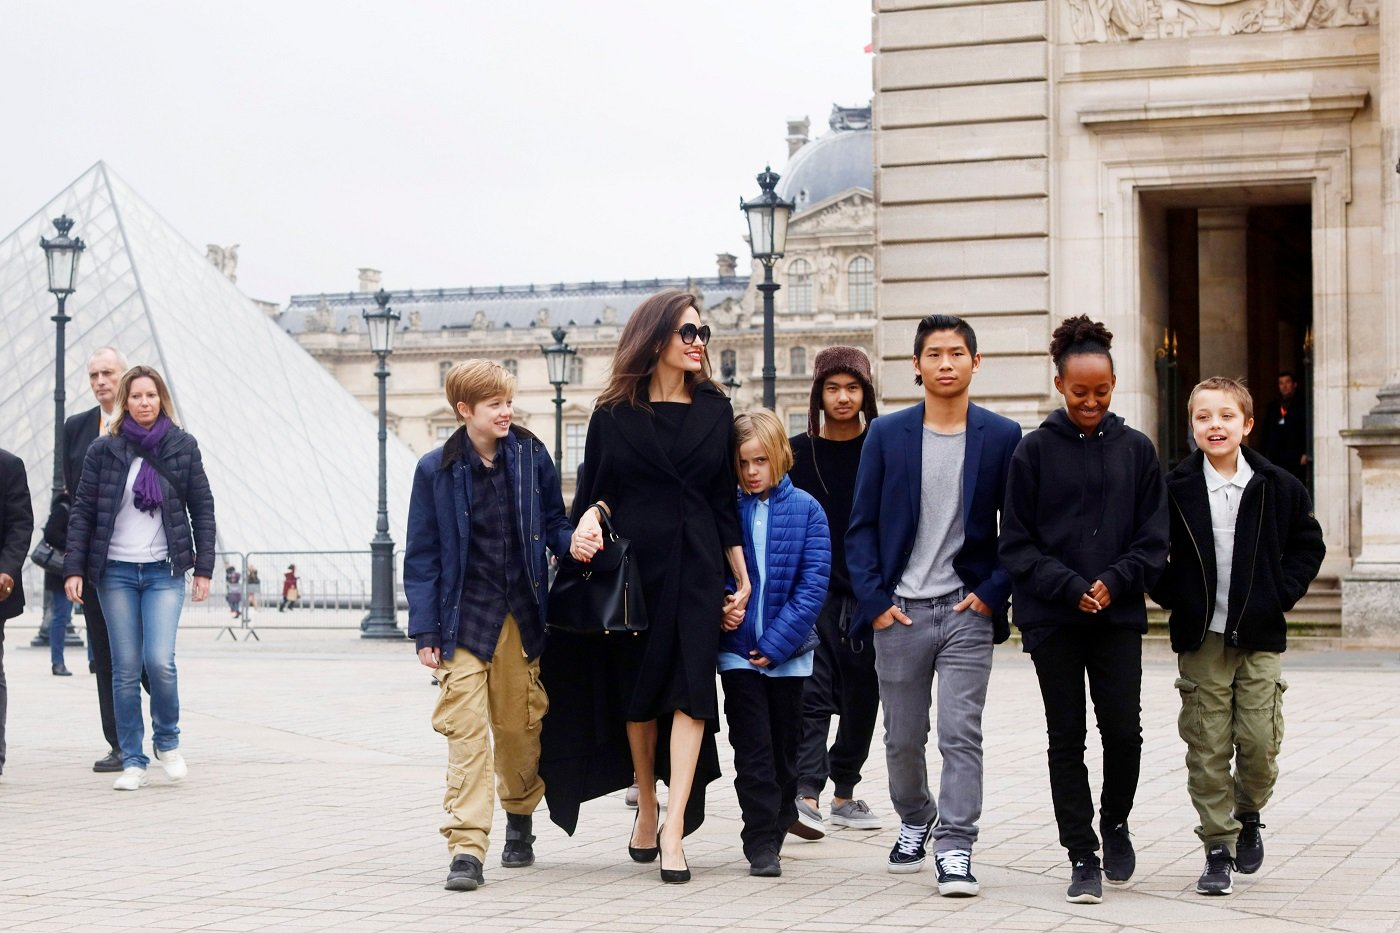 Angelina Jolie with Shiloh, Maddox, Vivienne Marcheline, Pax Thien, Zahara Marley, and Knox Leon Jolie-Pitt visit the Louvre in Paris, France, on January 30, 2017 | Photo: Mehdi Taamallah/NurPhoto/Getty Images